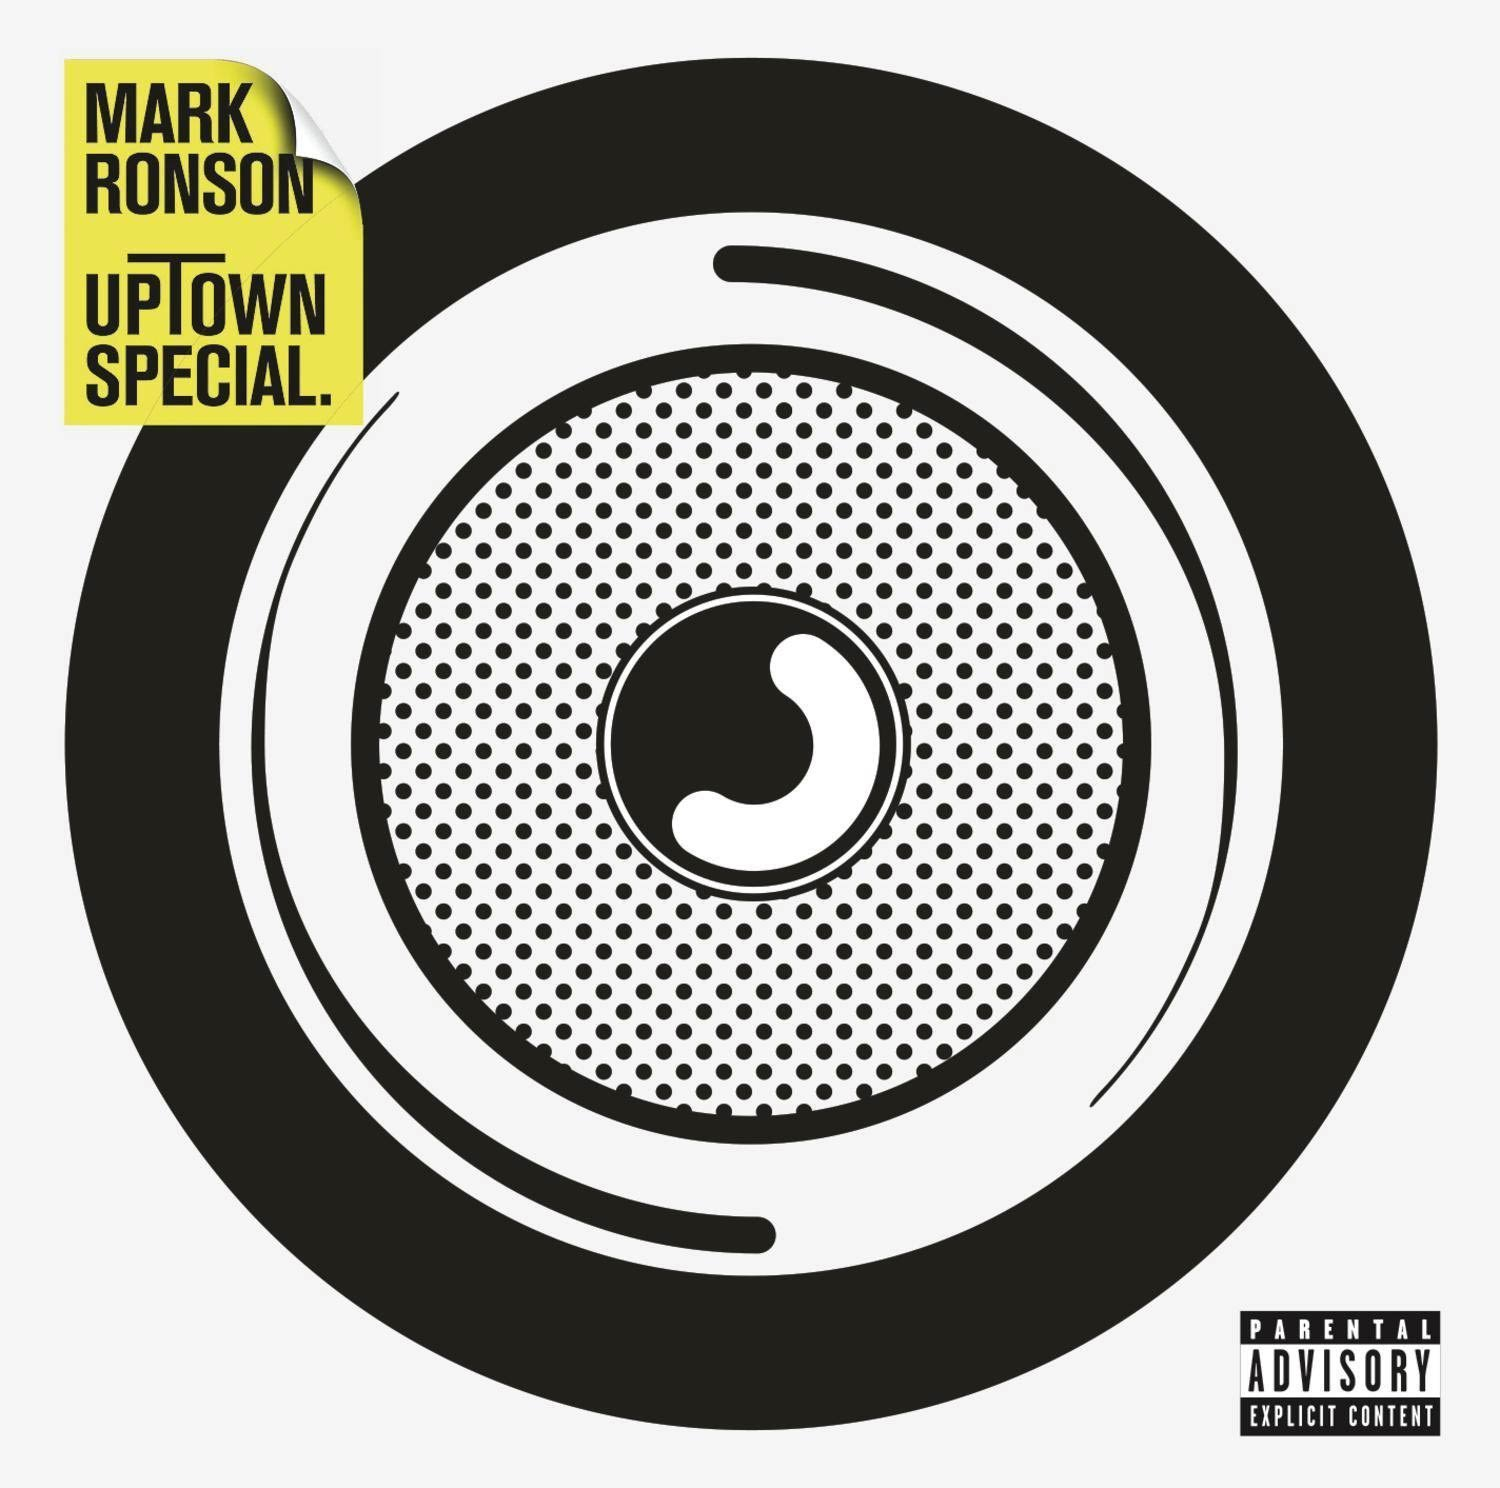 Best of Albums 2015 - Mark Ronson, Uptown Special